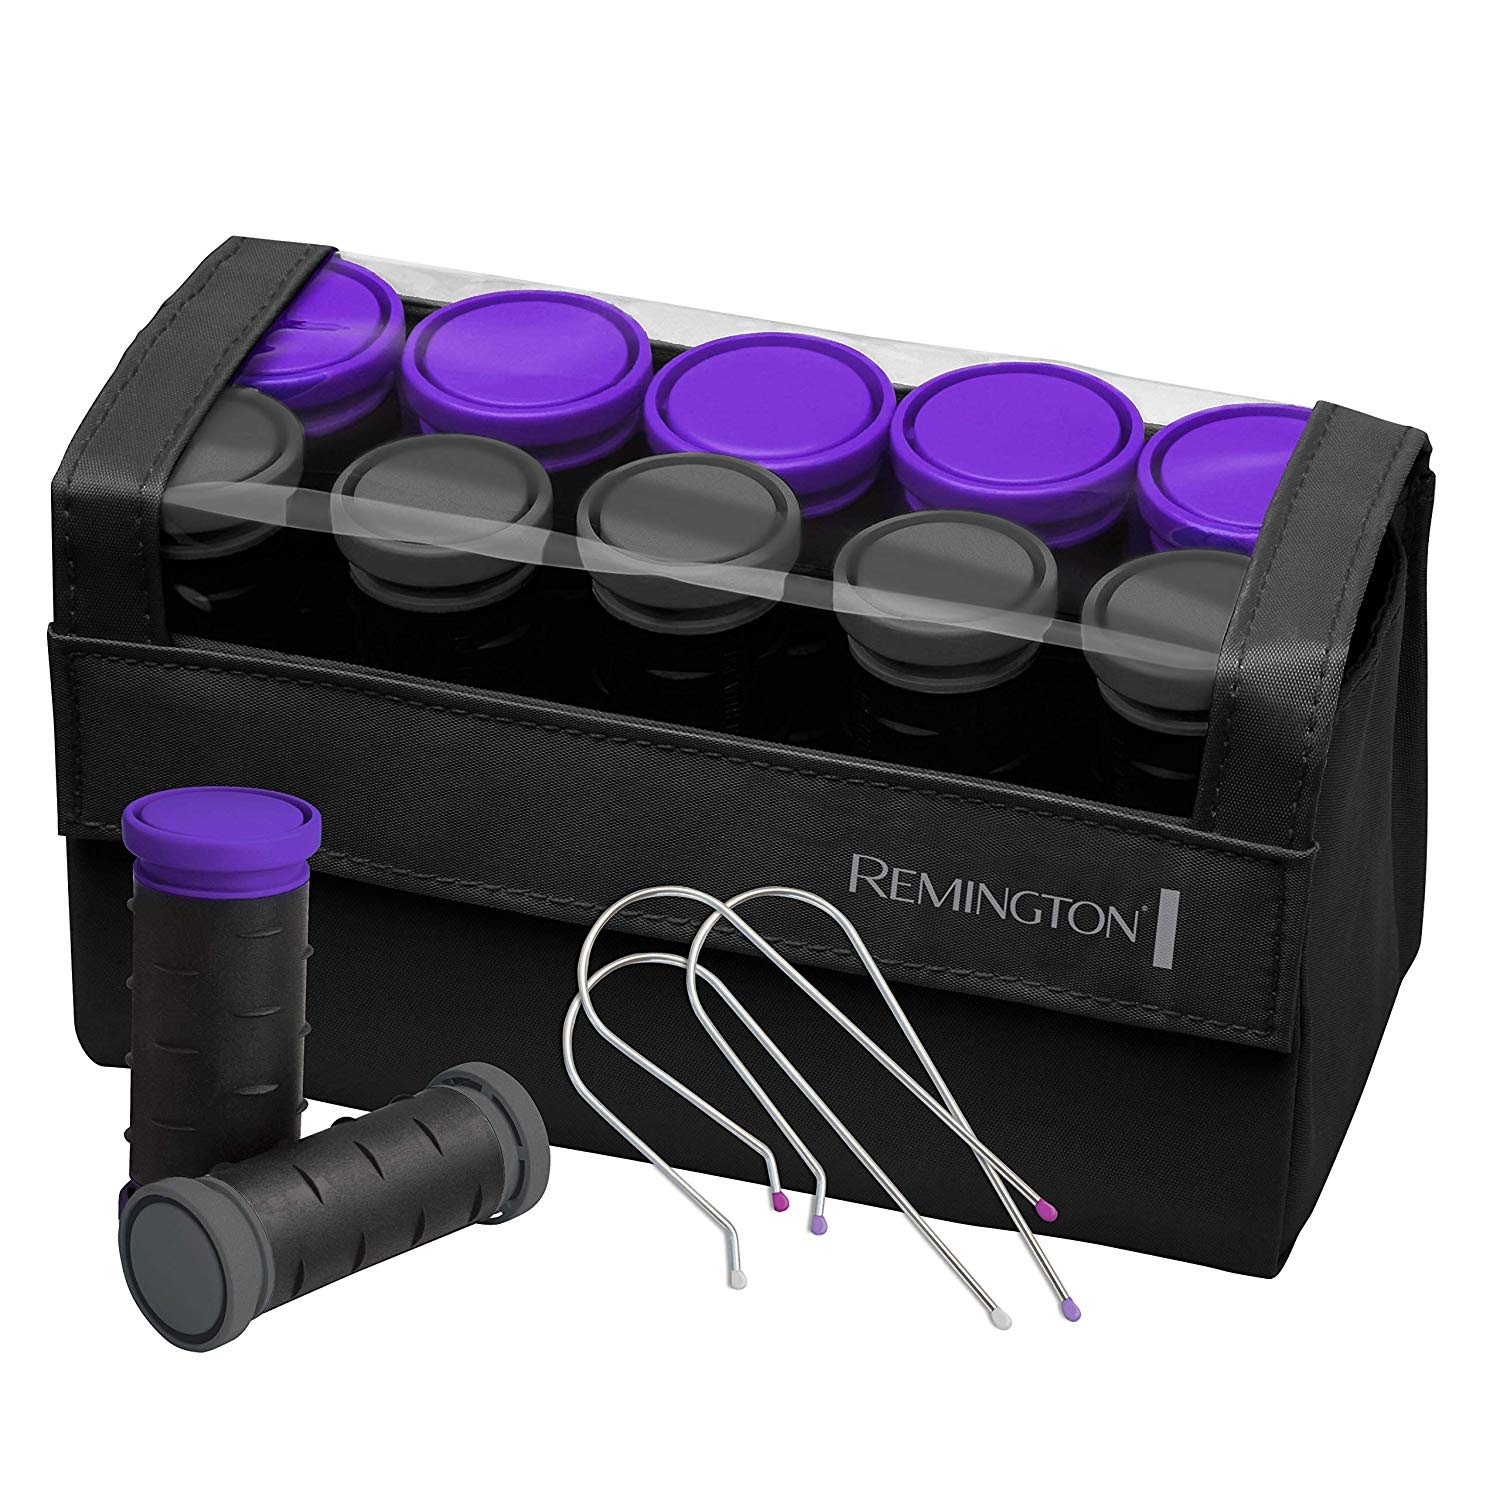 Remington Compact Ceramic Hair Rollers